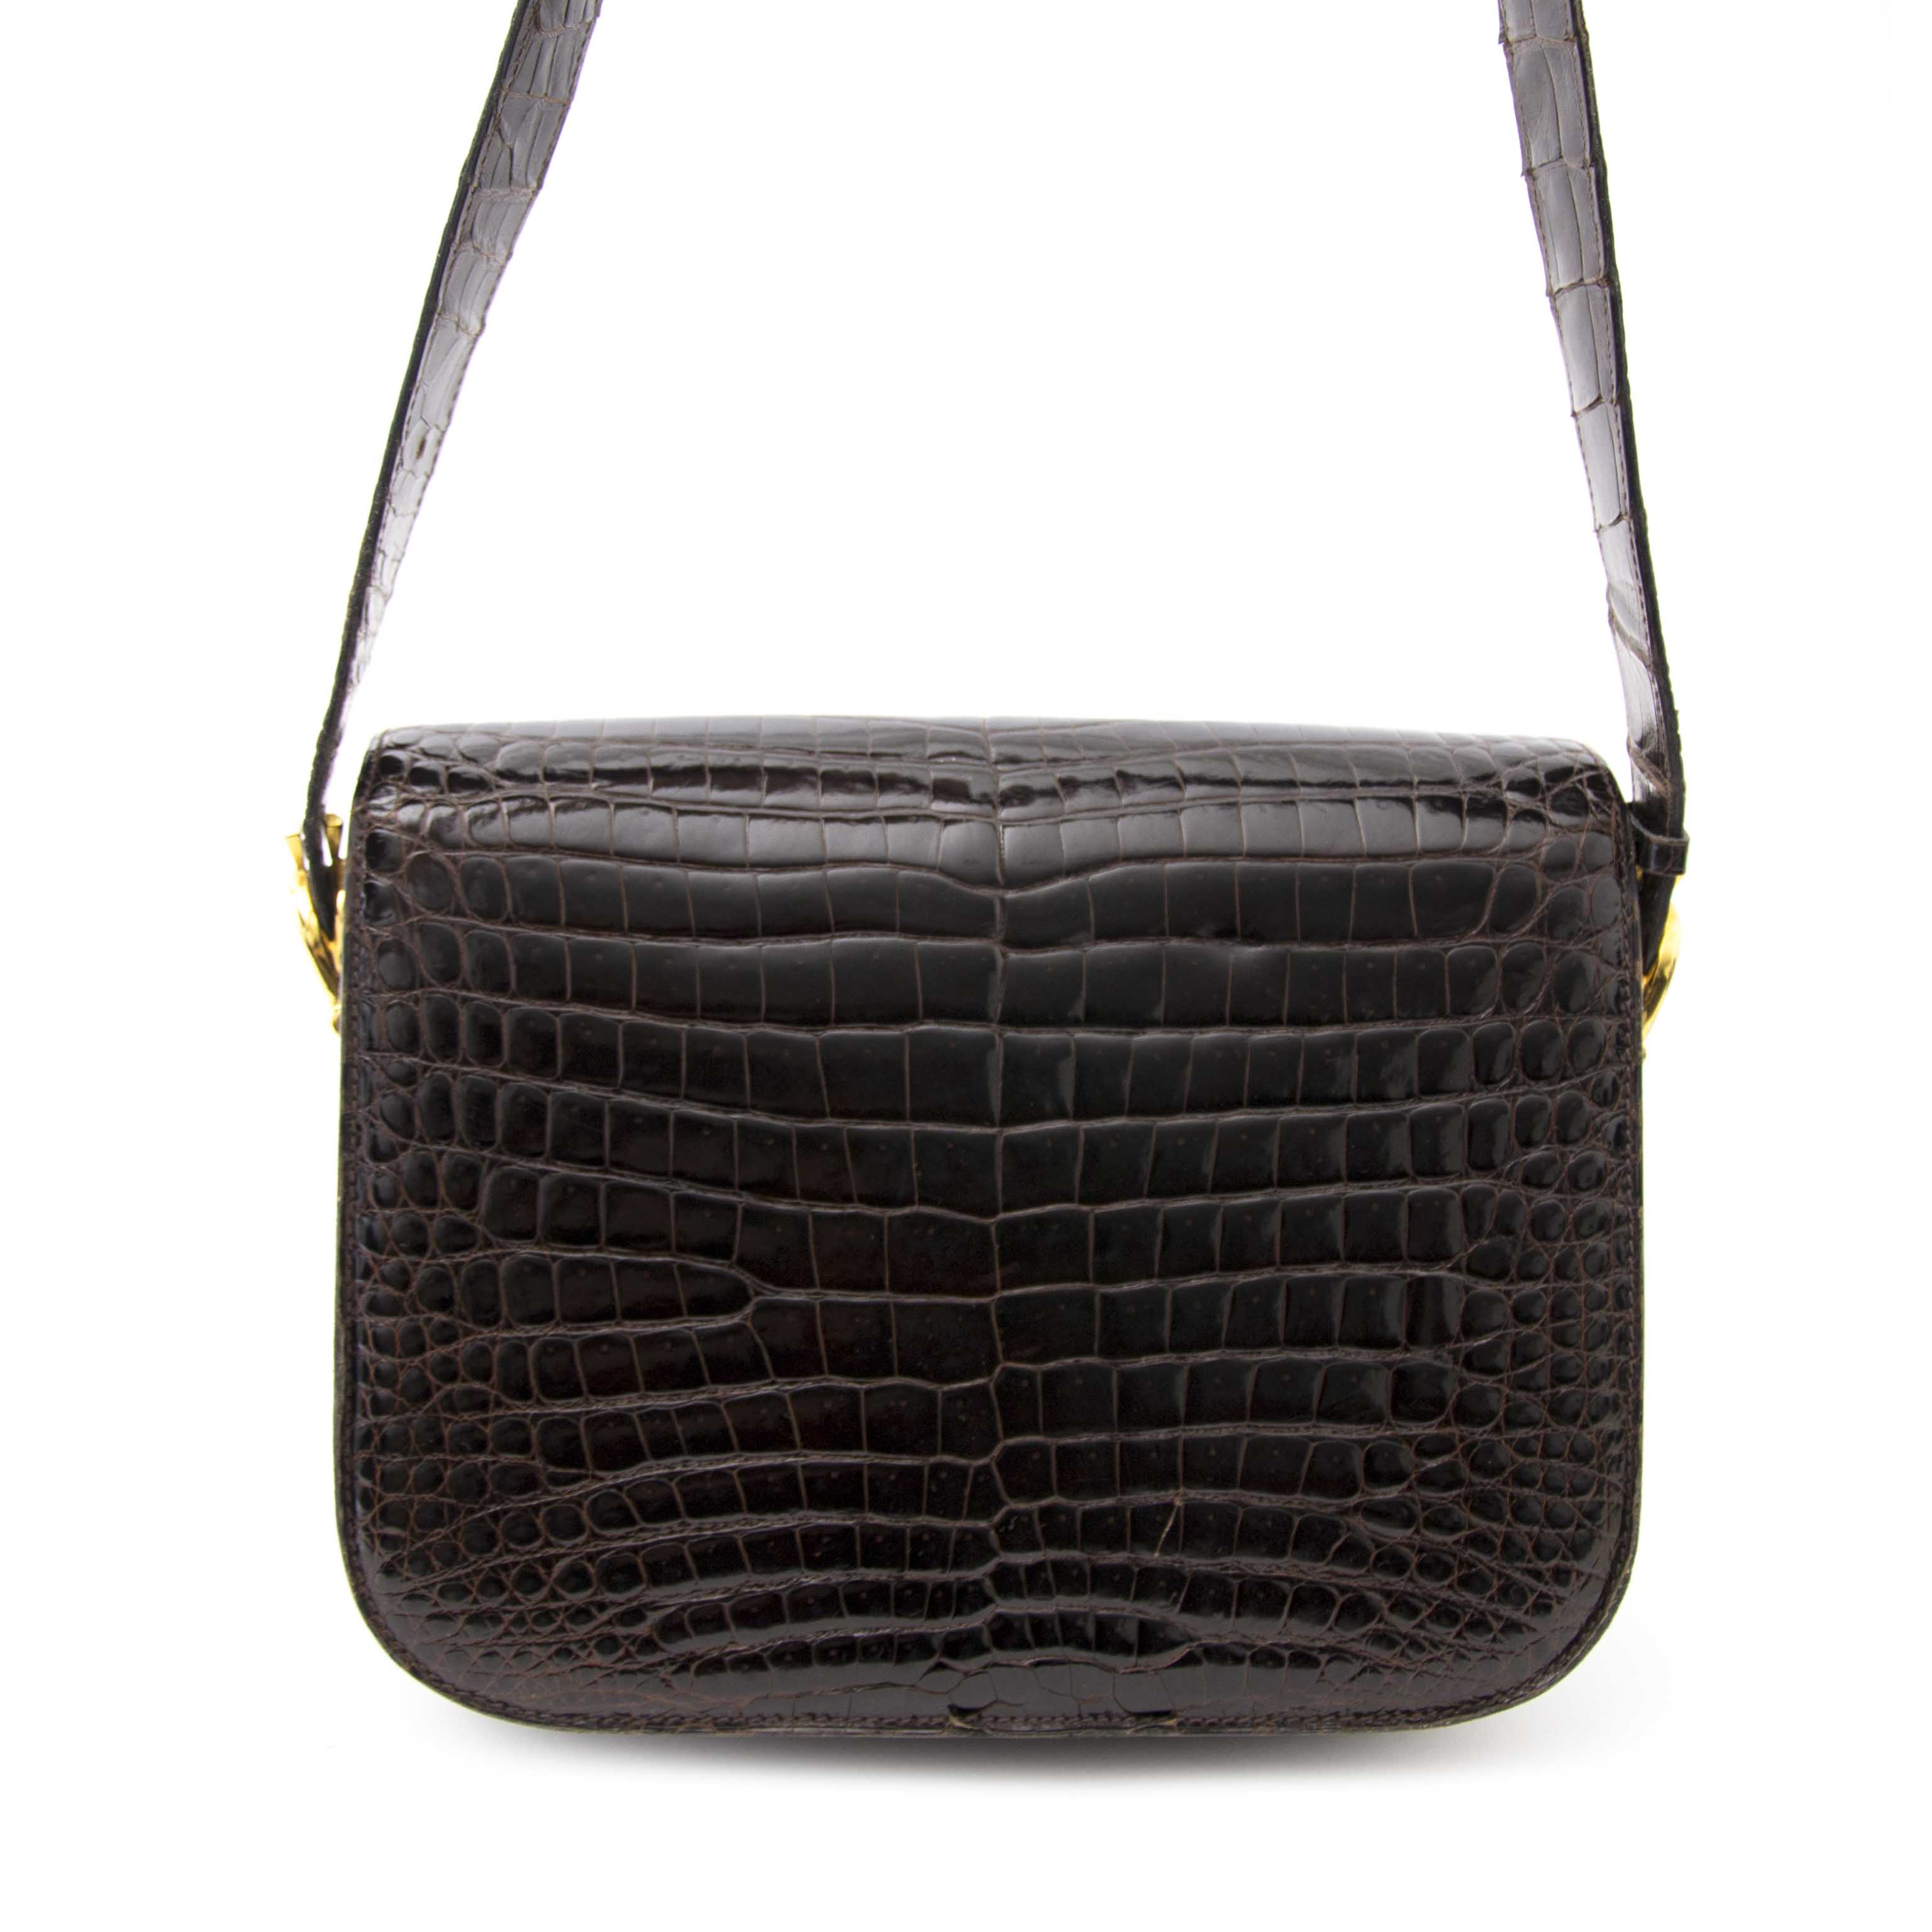 57a8c76d3cb2 ... Labellov We buy and sell your authentic Céline Vintage Croco Horse Box  Bag